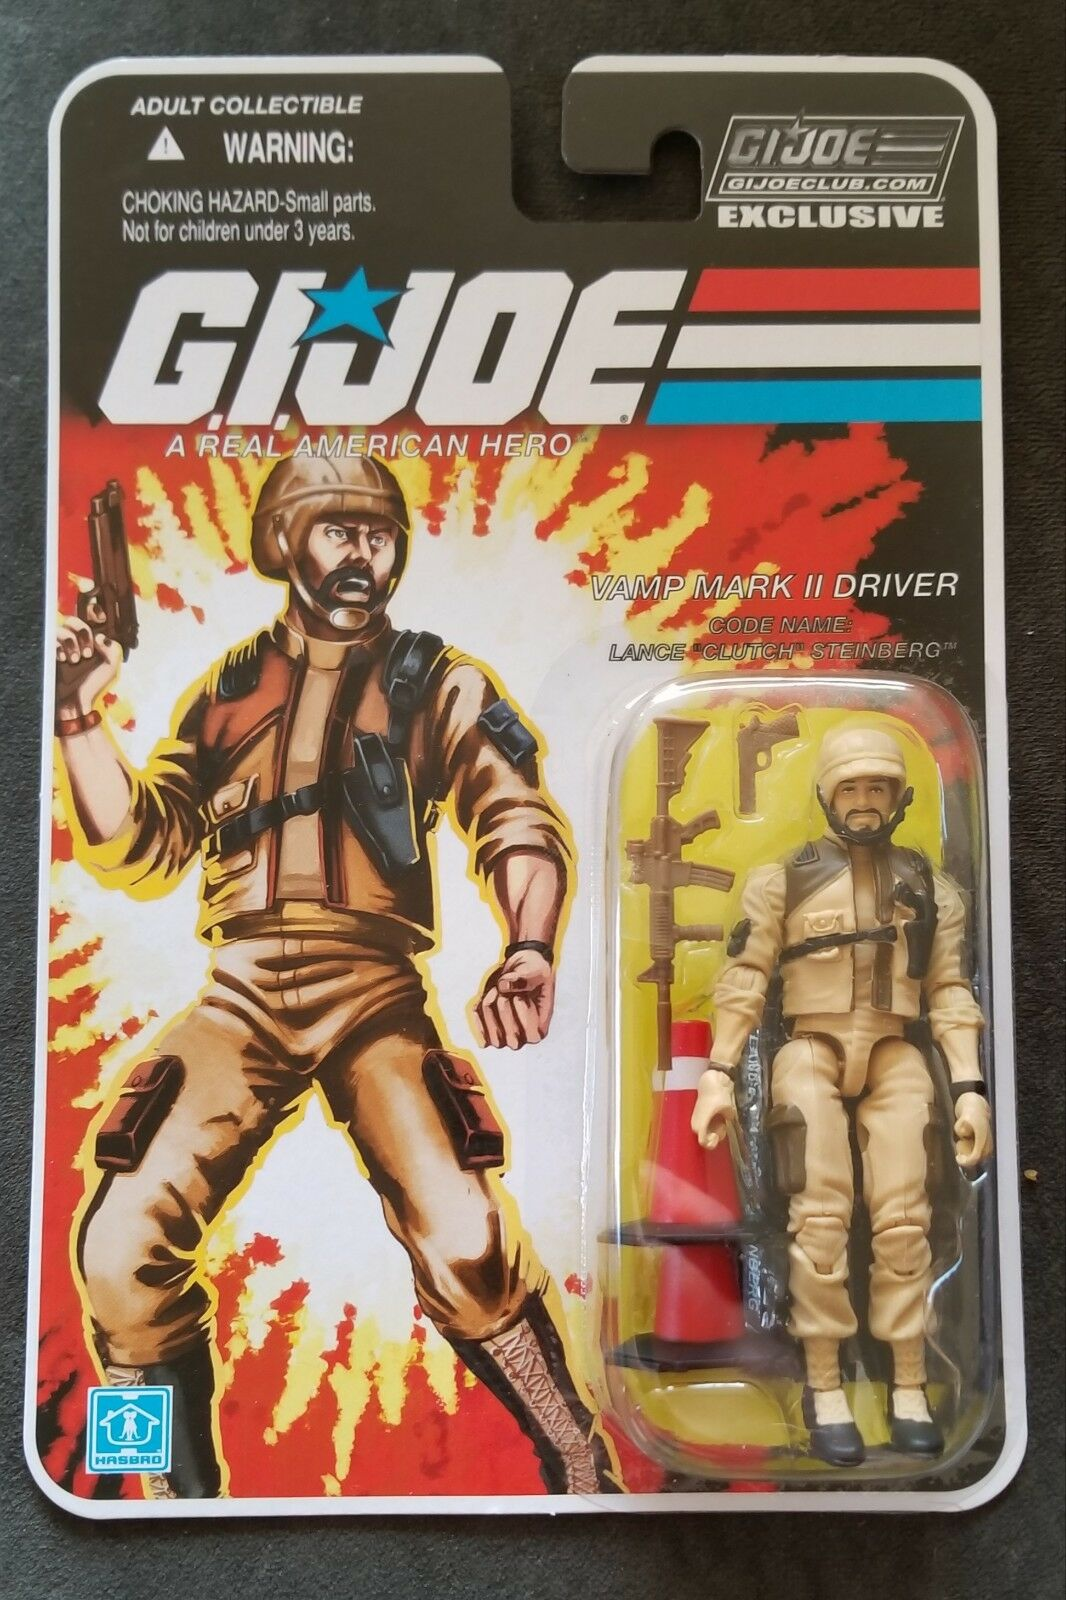 2018 GI Joe Collectors Club FSS 8.0 Tan Clutch 3.75in. Action Figure